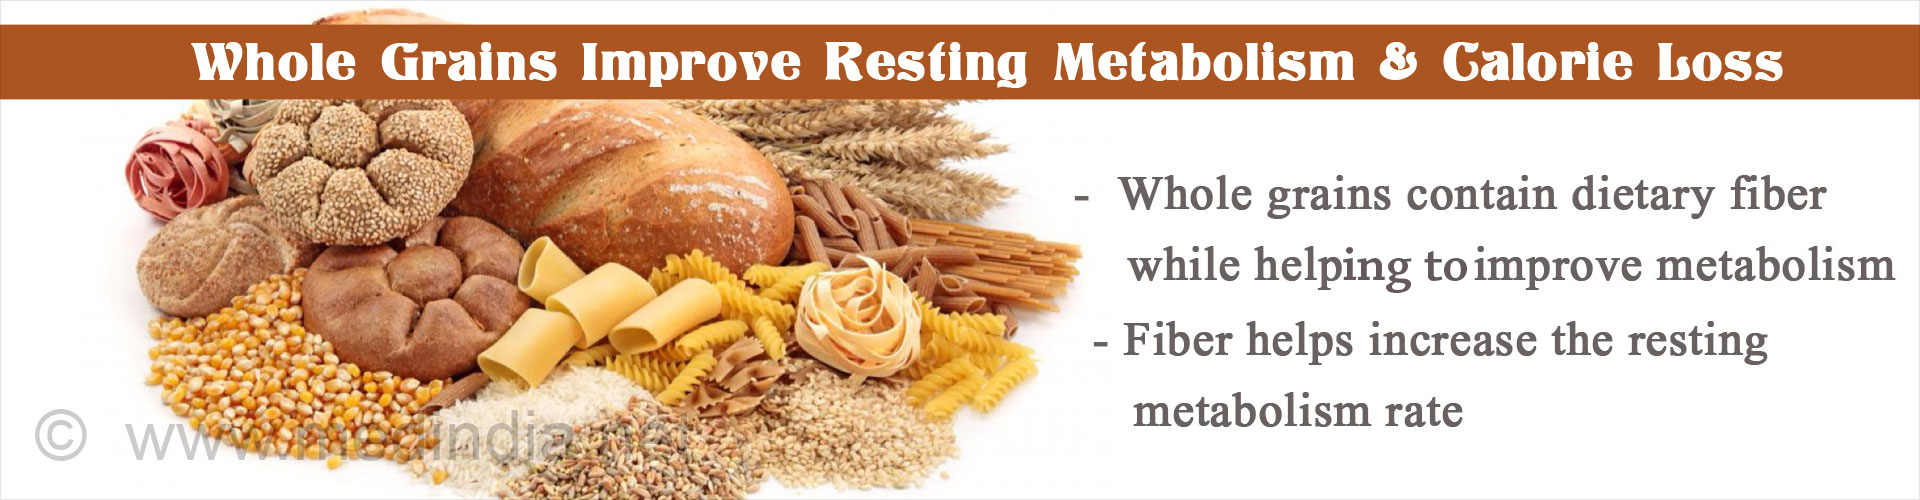 Whole grains improves resting metabolism and calorie loss